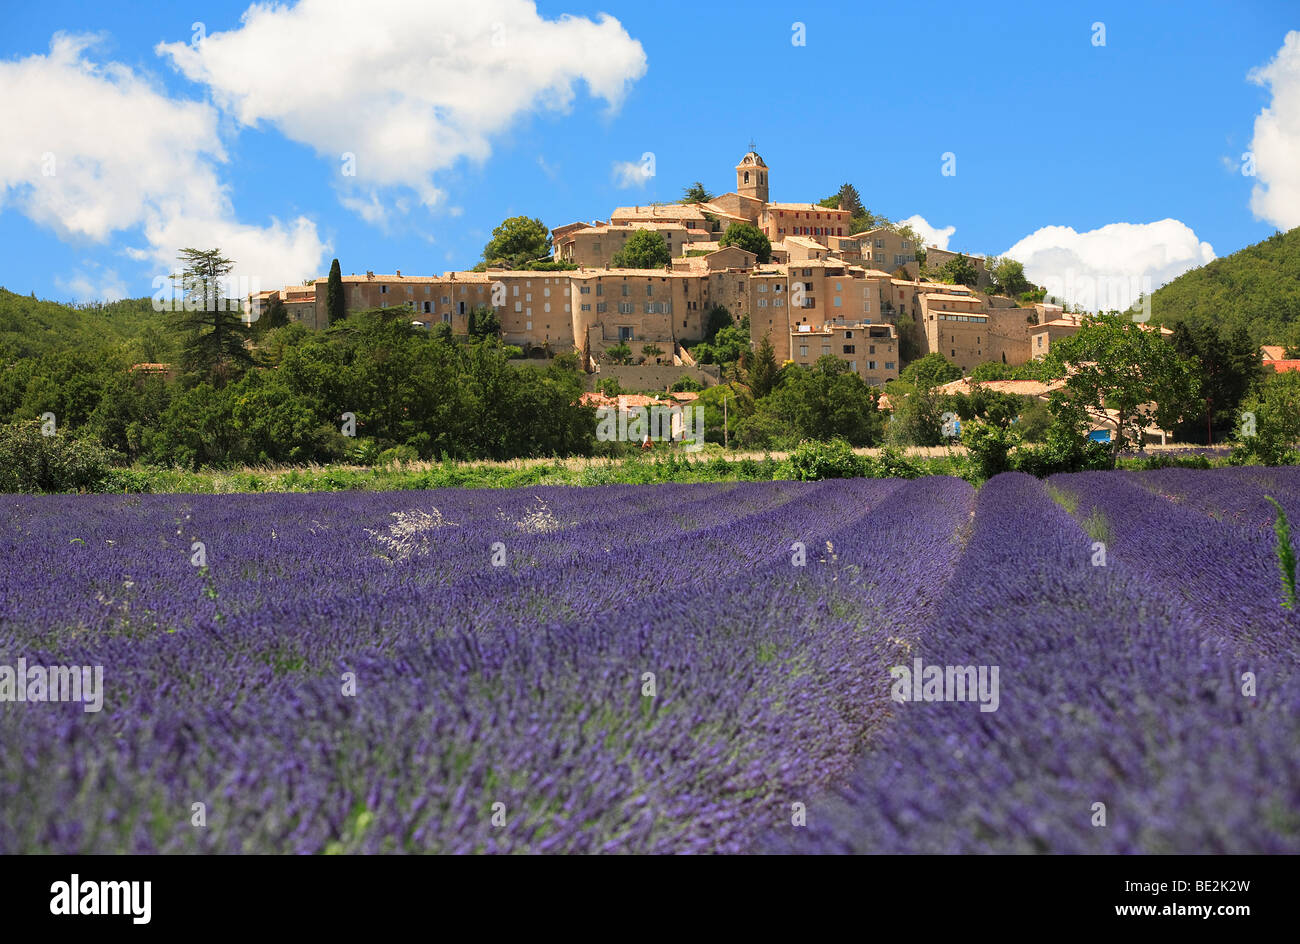 VILLAGE OF BANON, PROVENCE, FRANCE - Stock Image